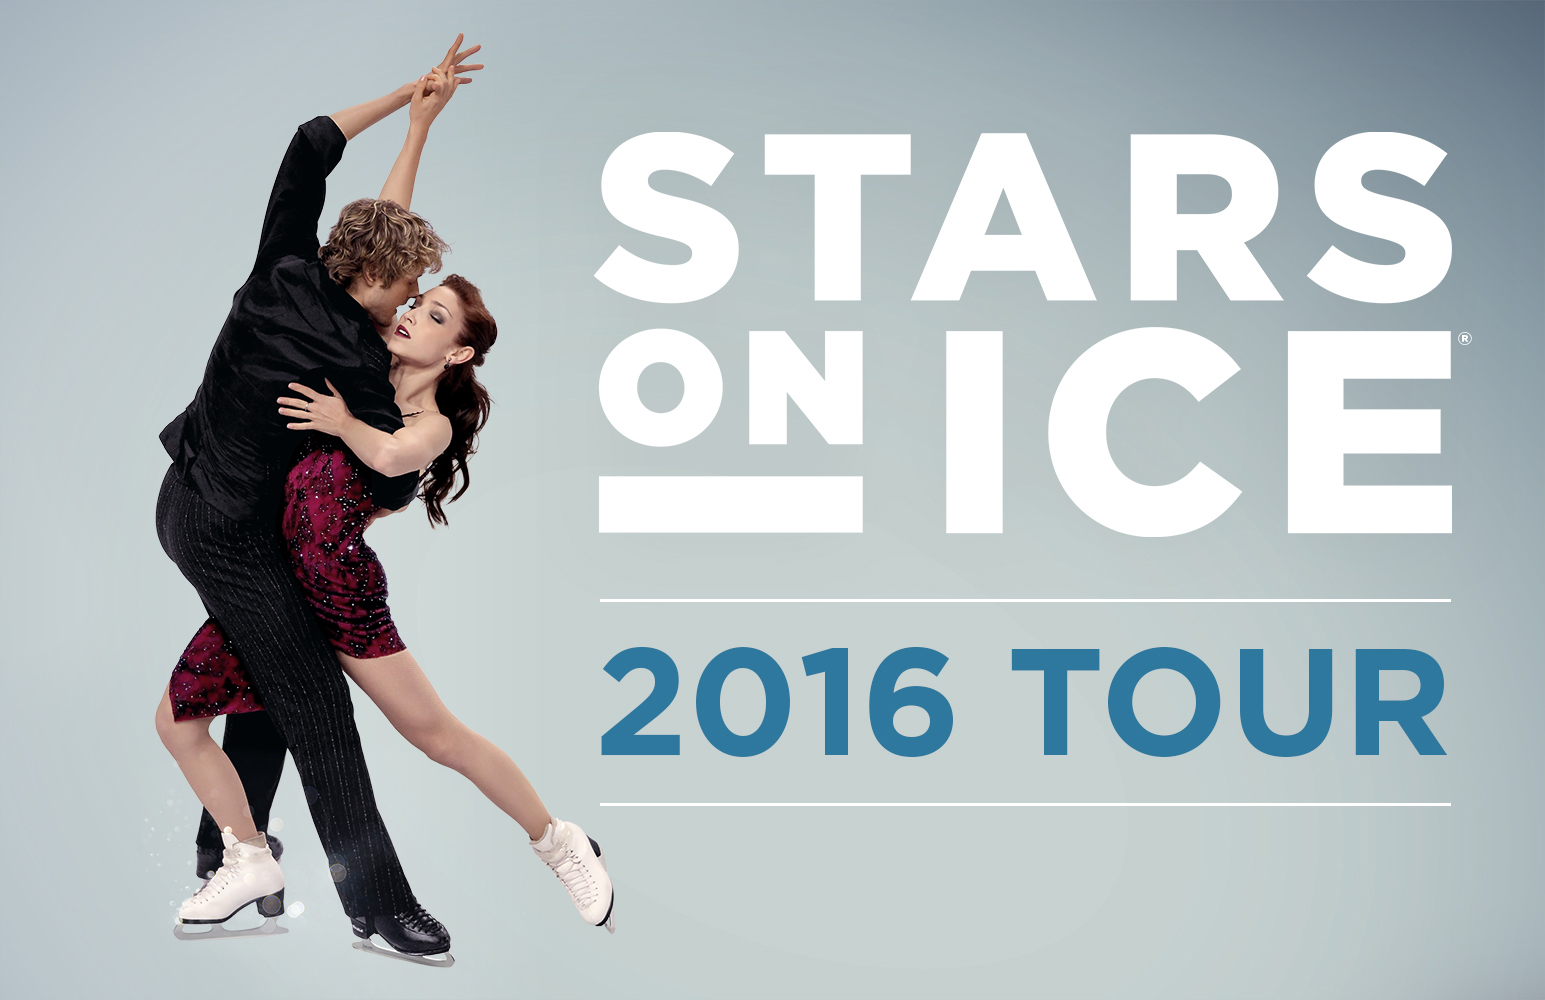 STARS ON ICE CELEBRATES 30 YEARS OF FIGURE SKATING EXCELLENCE